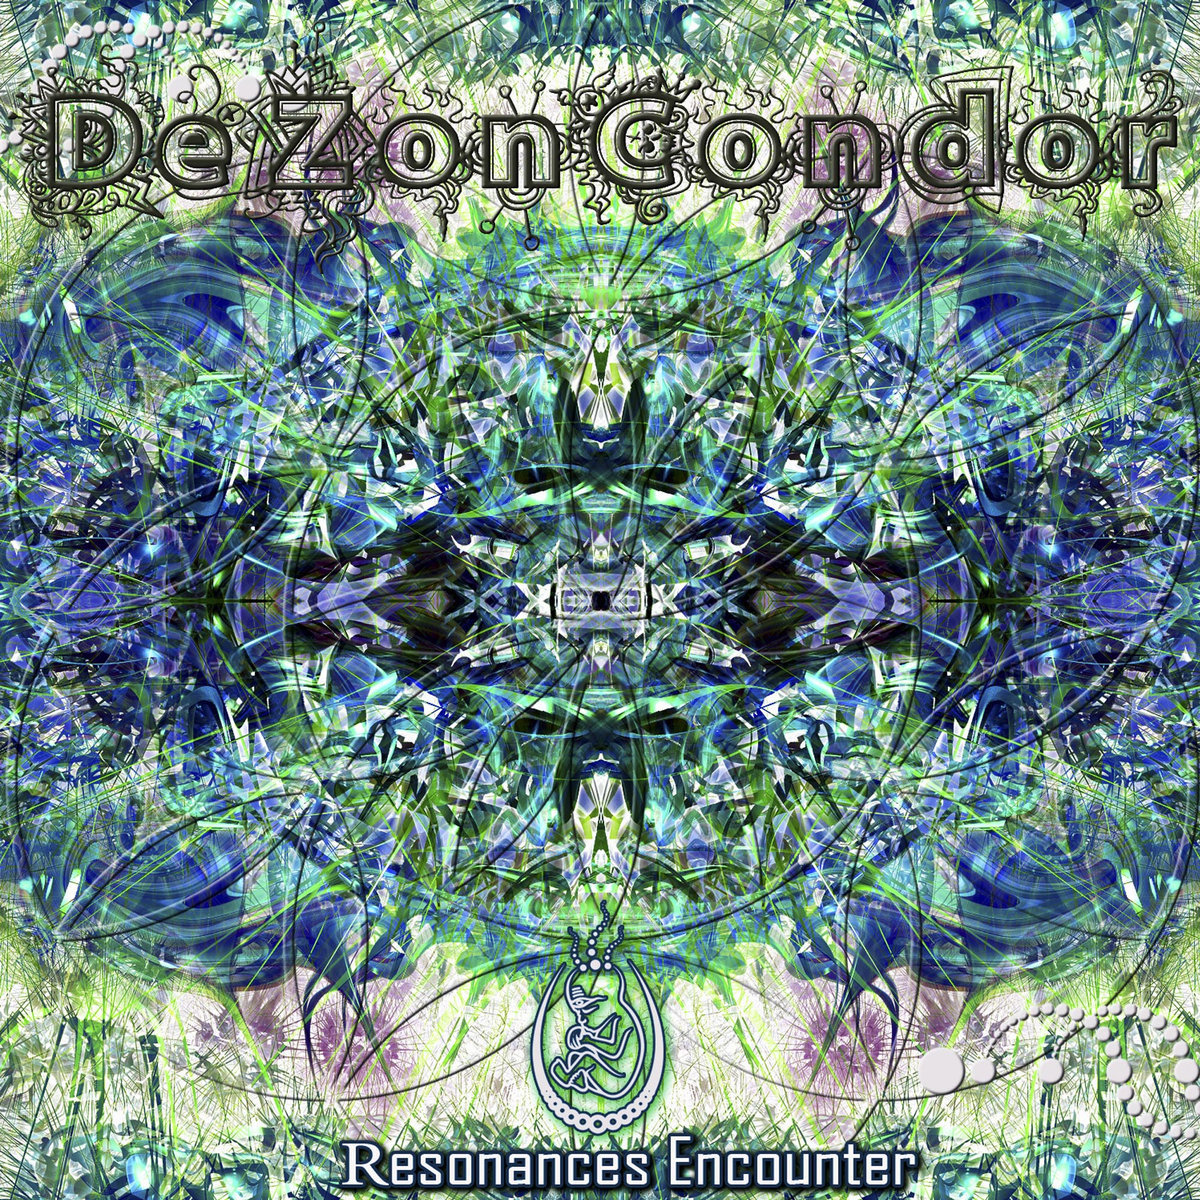 DezonCondor - Corpus Elevatis @ 'Resonances Encounter' album (ambient, electronic)